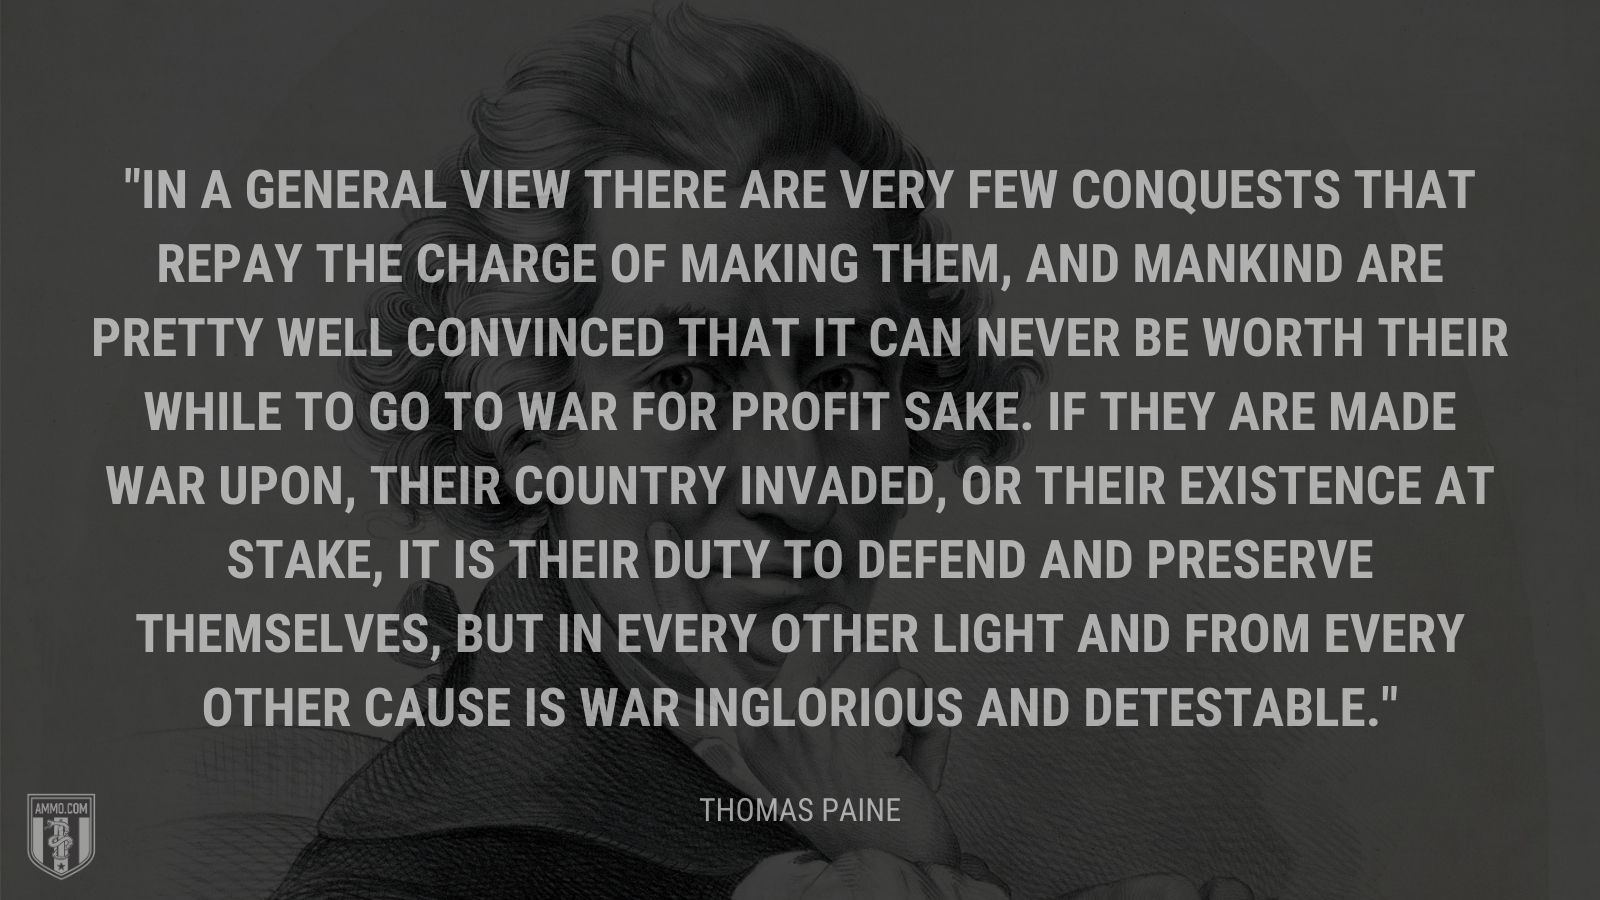 """In a general view there are very few conquests that repay the charge of making them, and mankind are pretty well convinced that it can never be worth their while to go to war for profit sake. If they are made war upon, their country invaded, or their existence at stake, it is their duty to defend and preserve themselves, but in every other light and from every other cause is war inglorious and detestable."" - Thomas Paine"